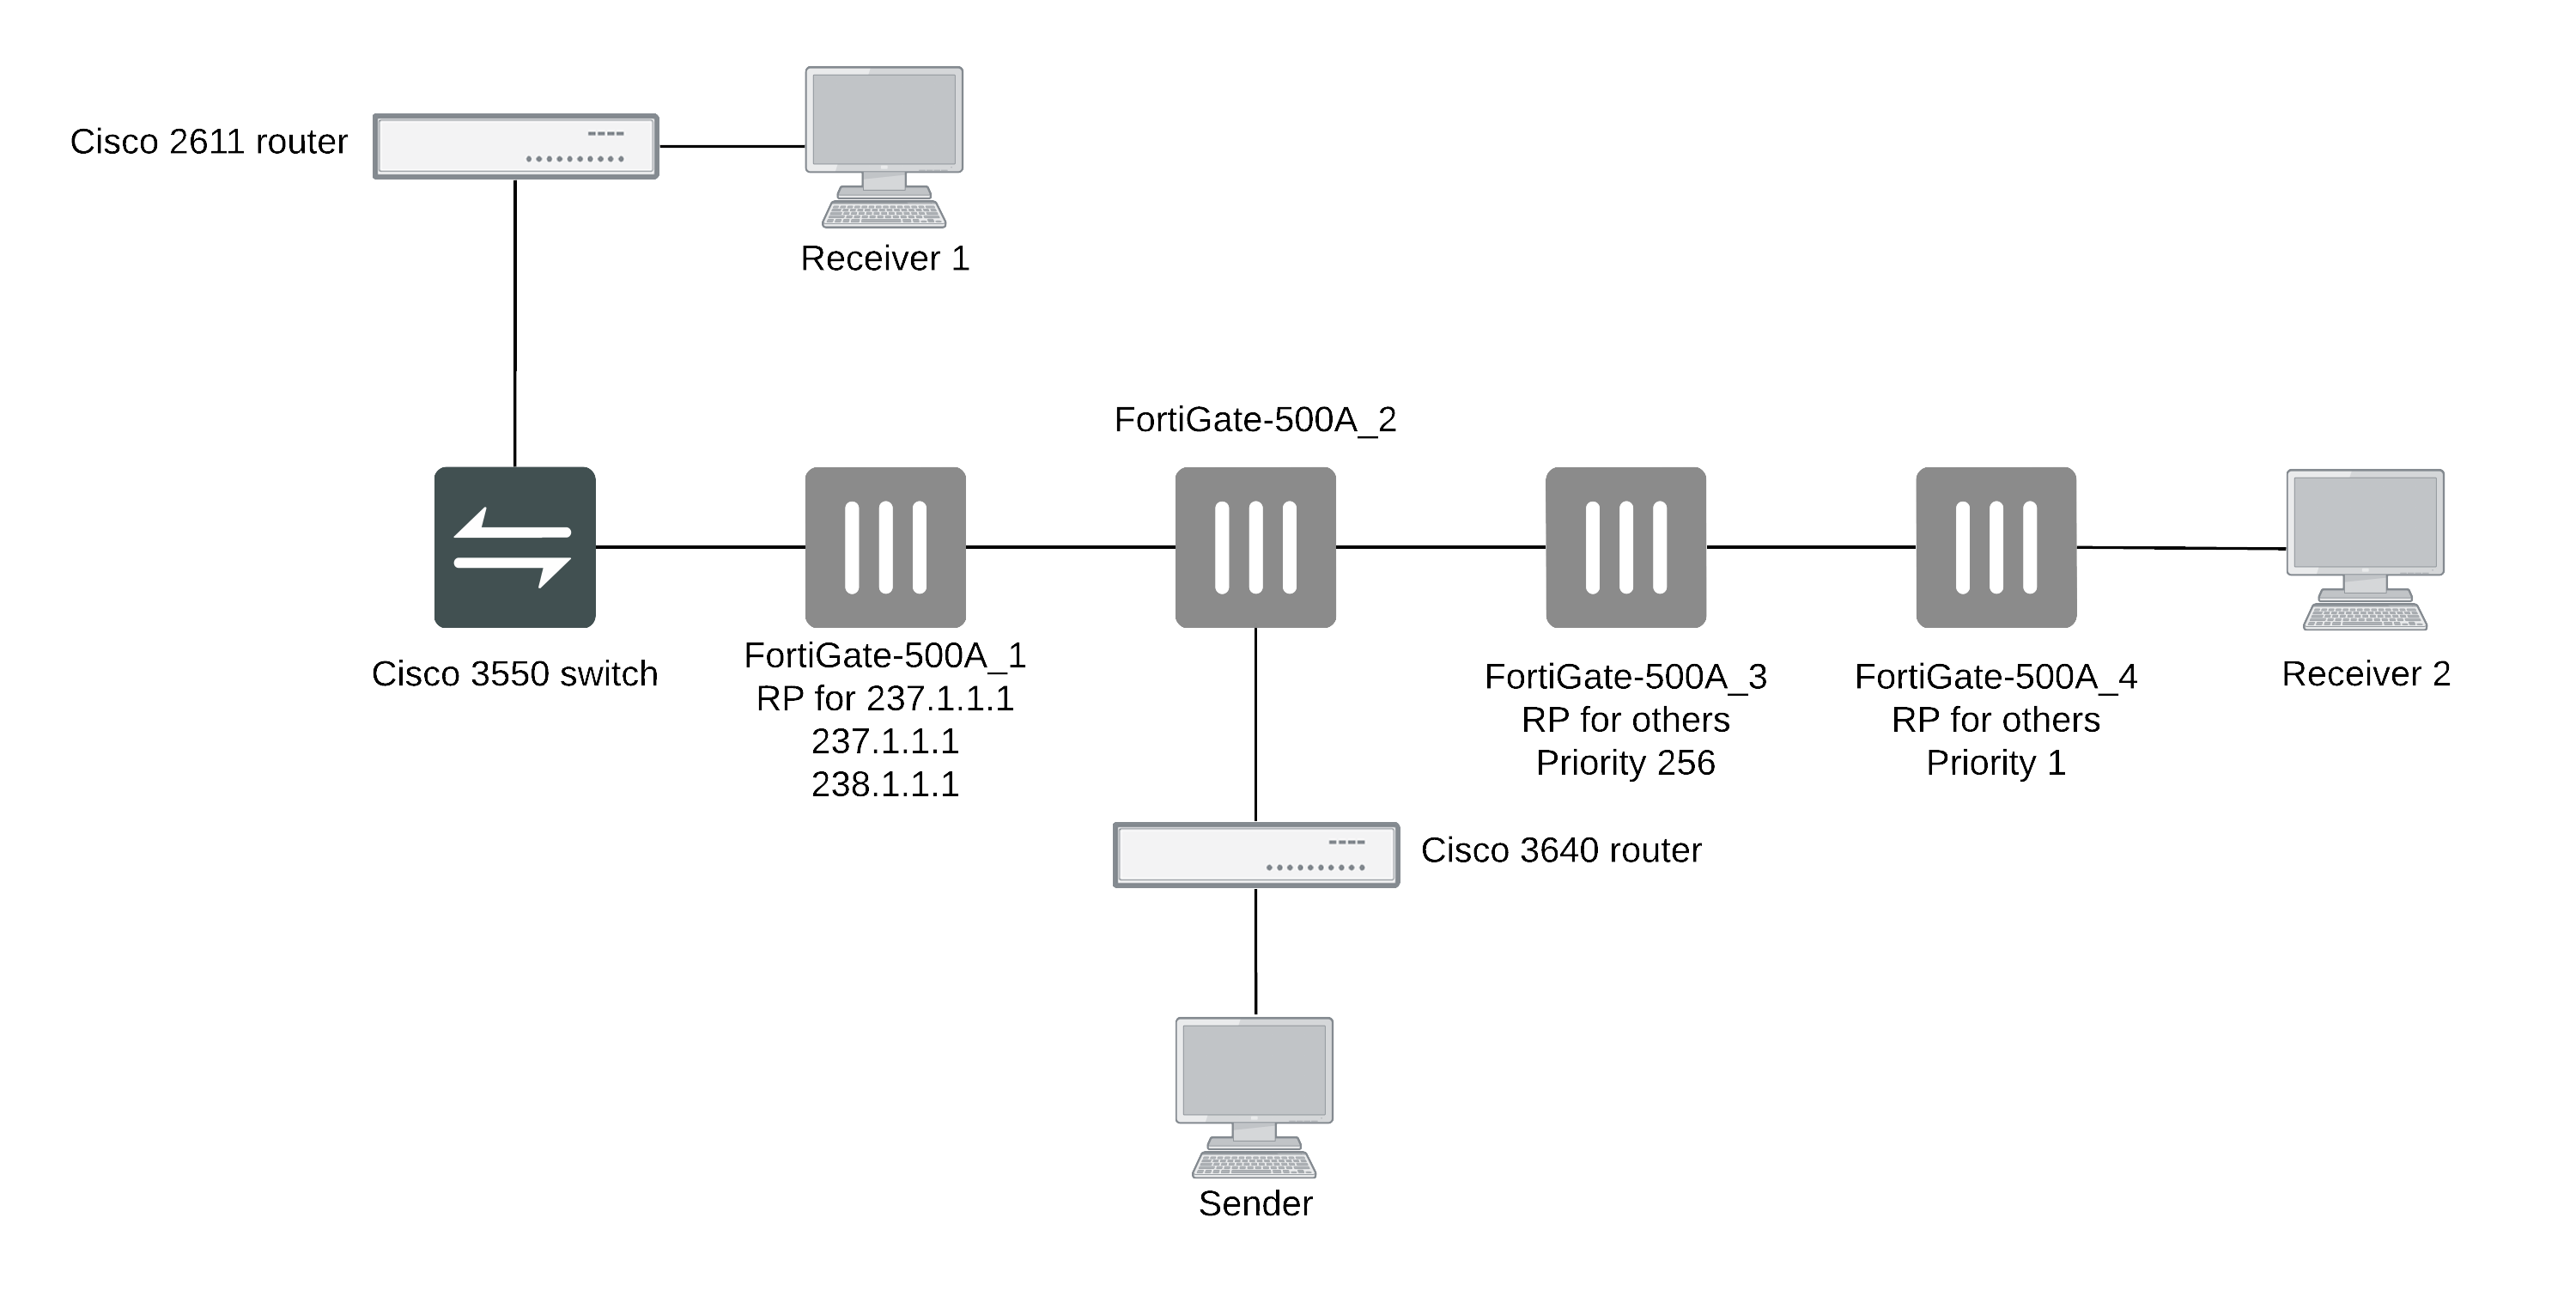 Example PIM configuration that uses BSR to find the RP